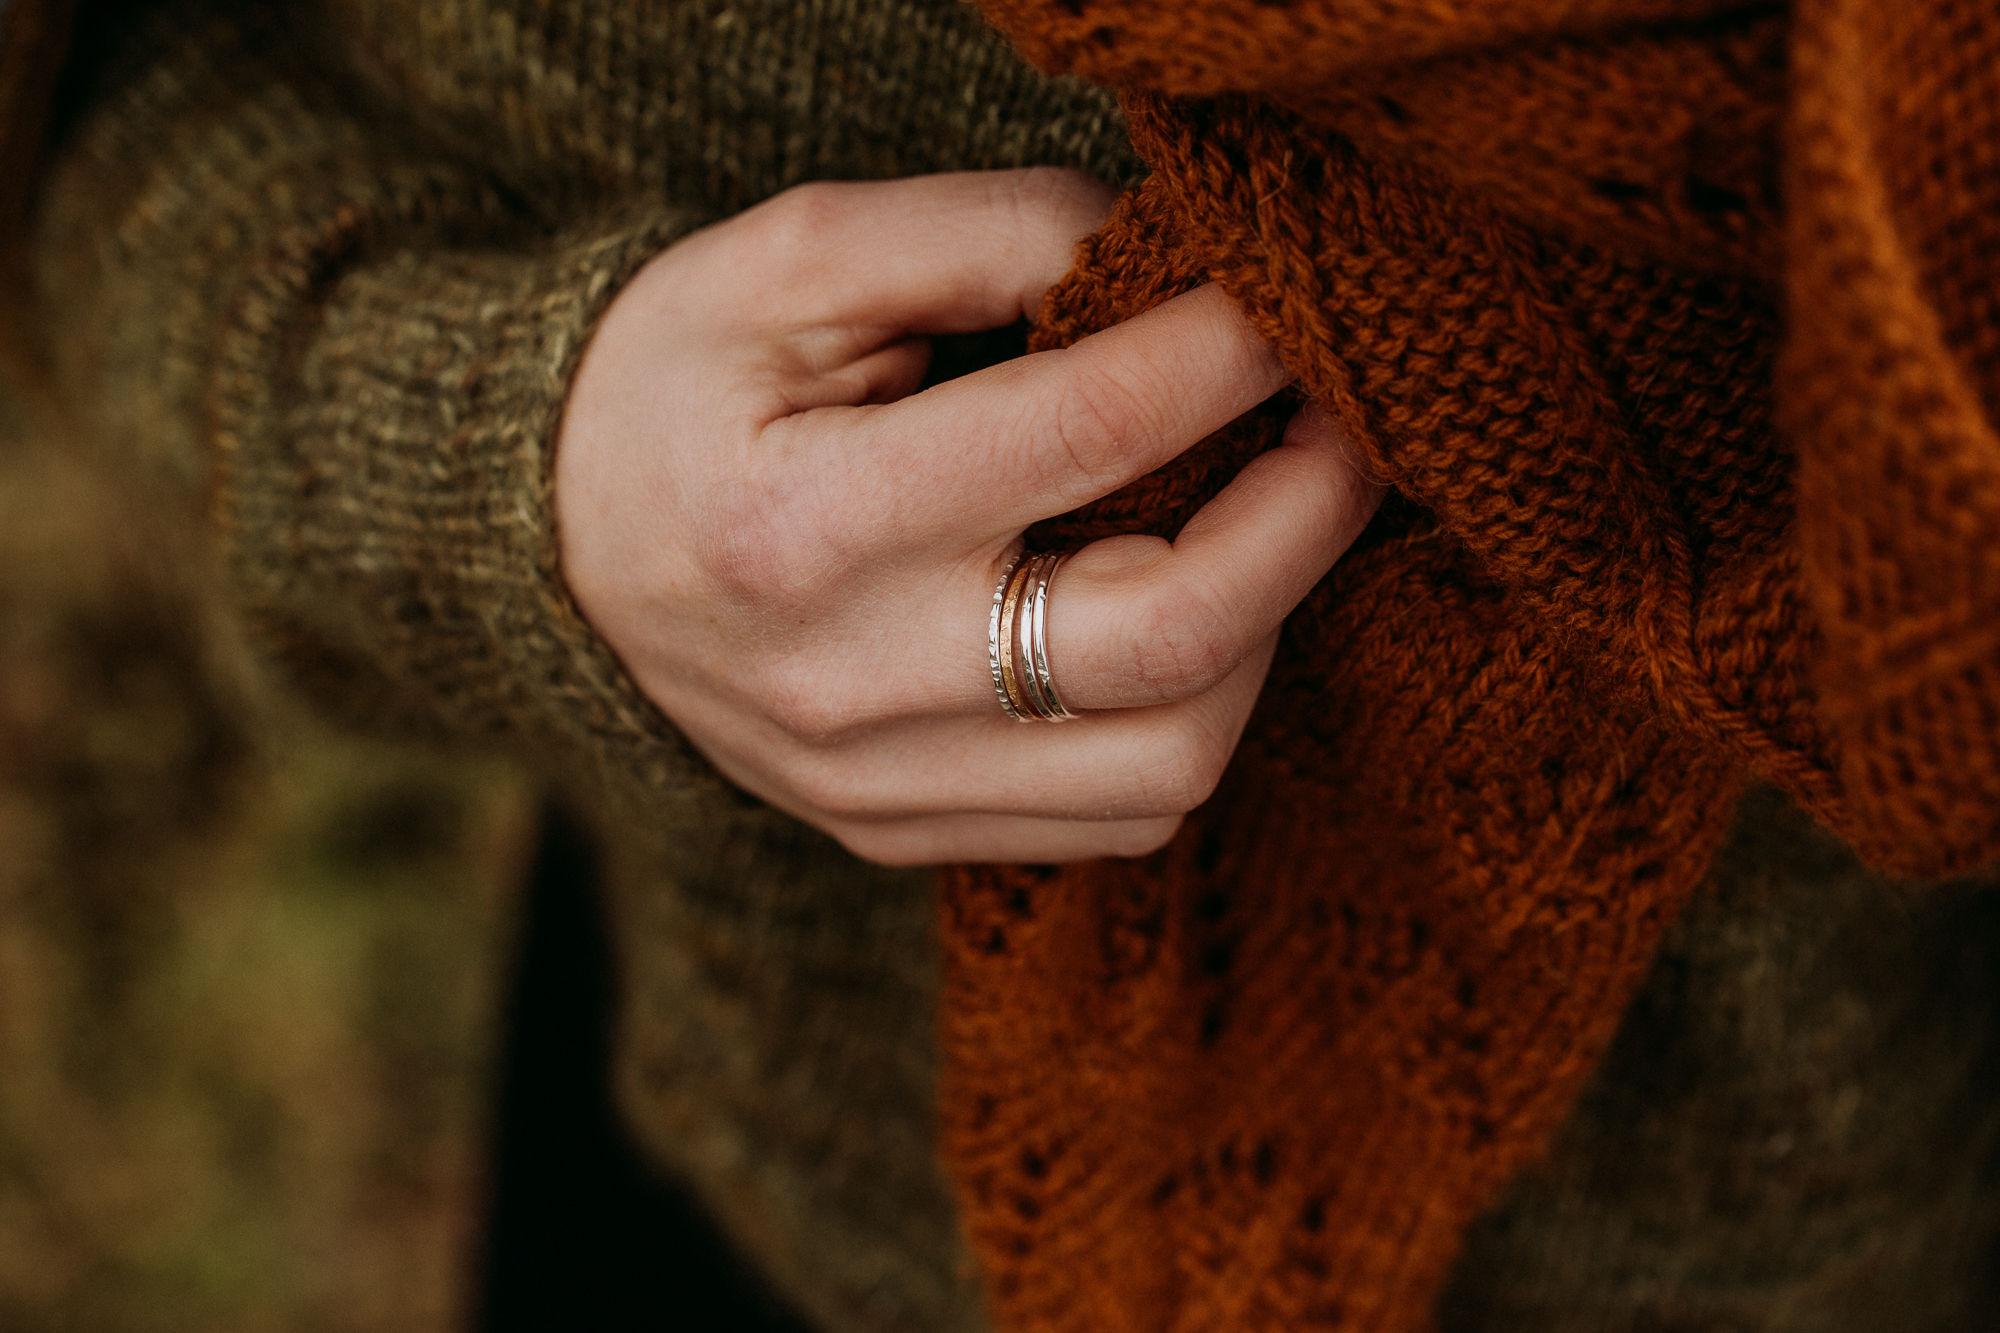 The Barkskin stacking ring set - from the bottom up; oak, gold, beech and rowan.